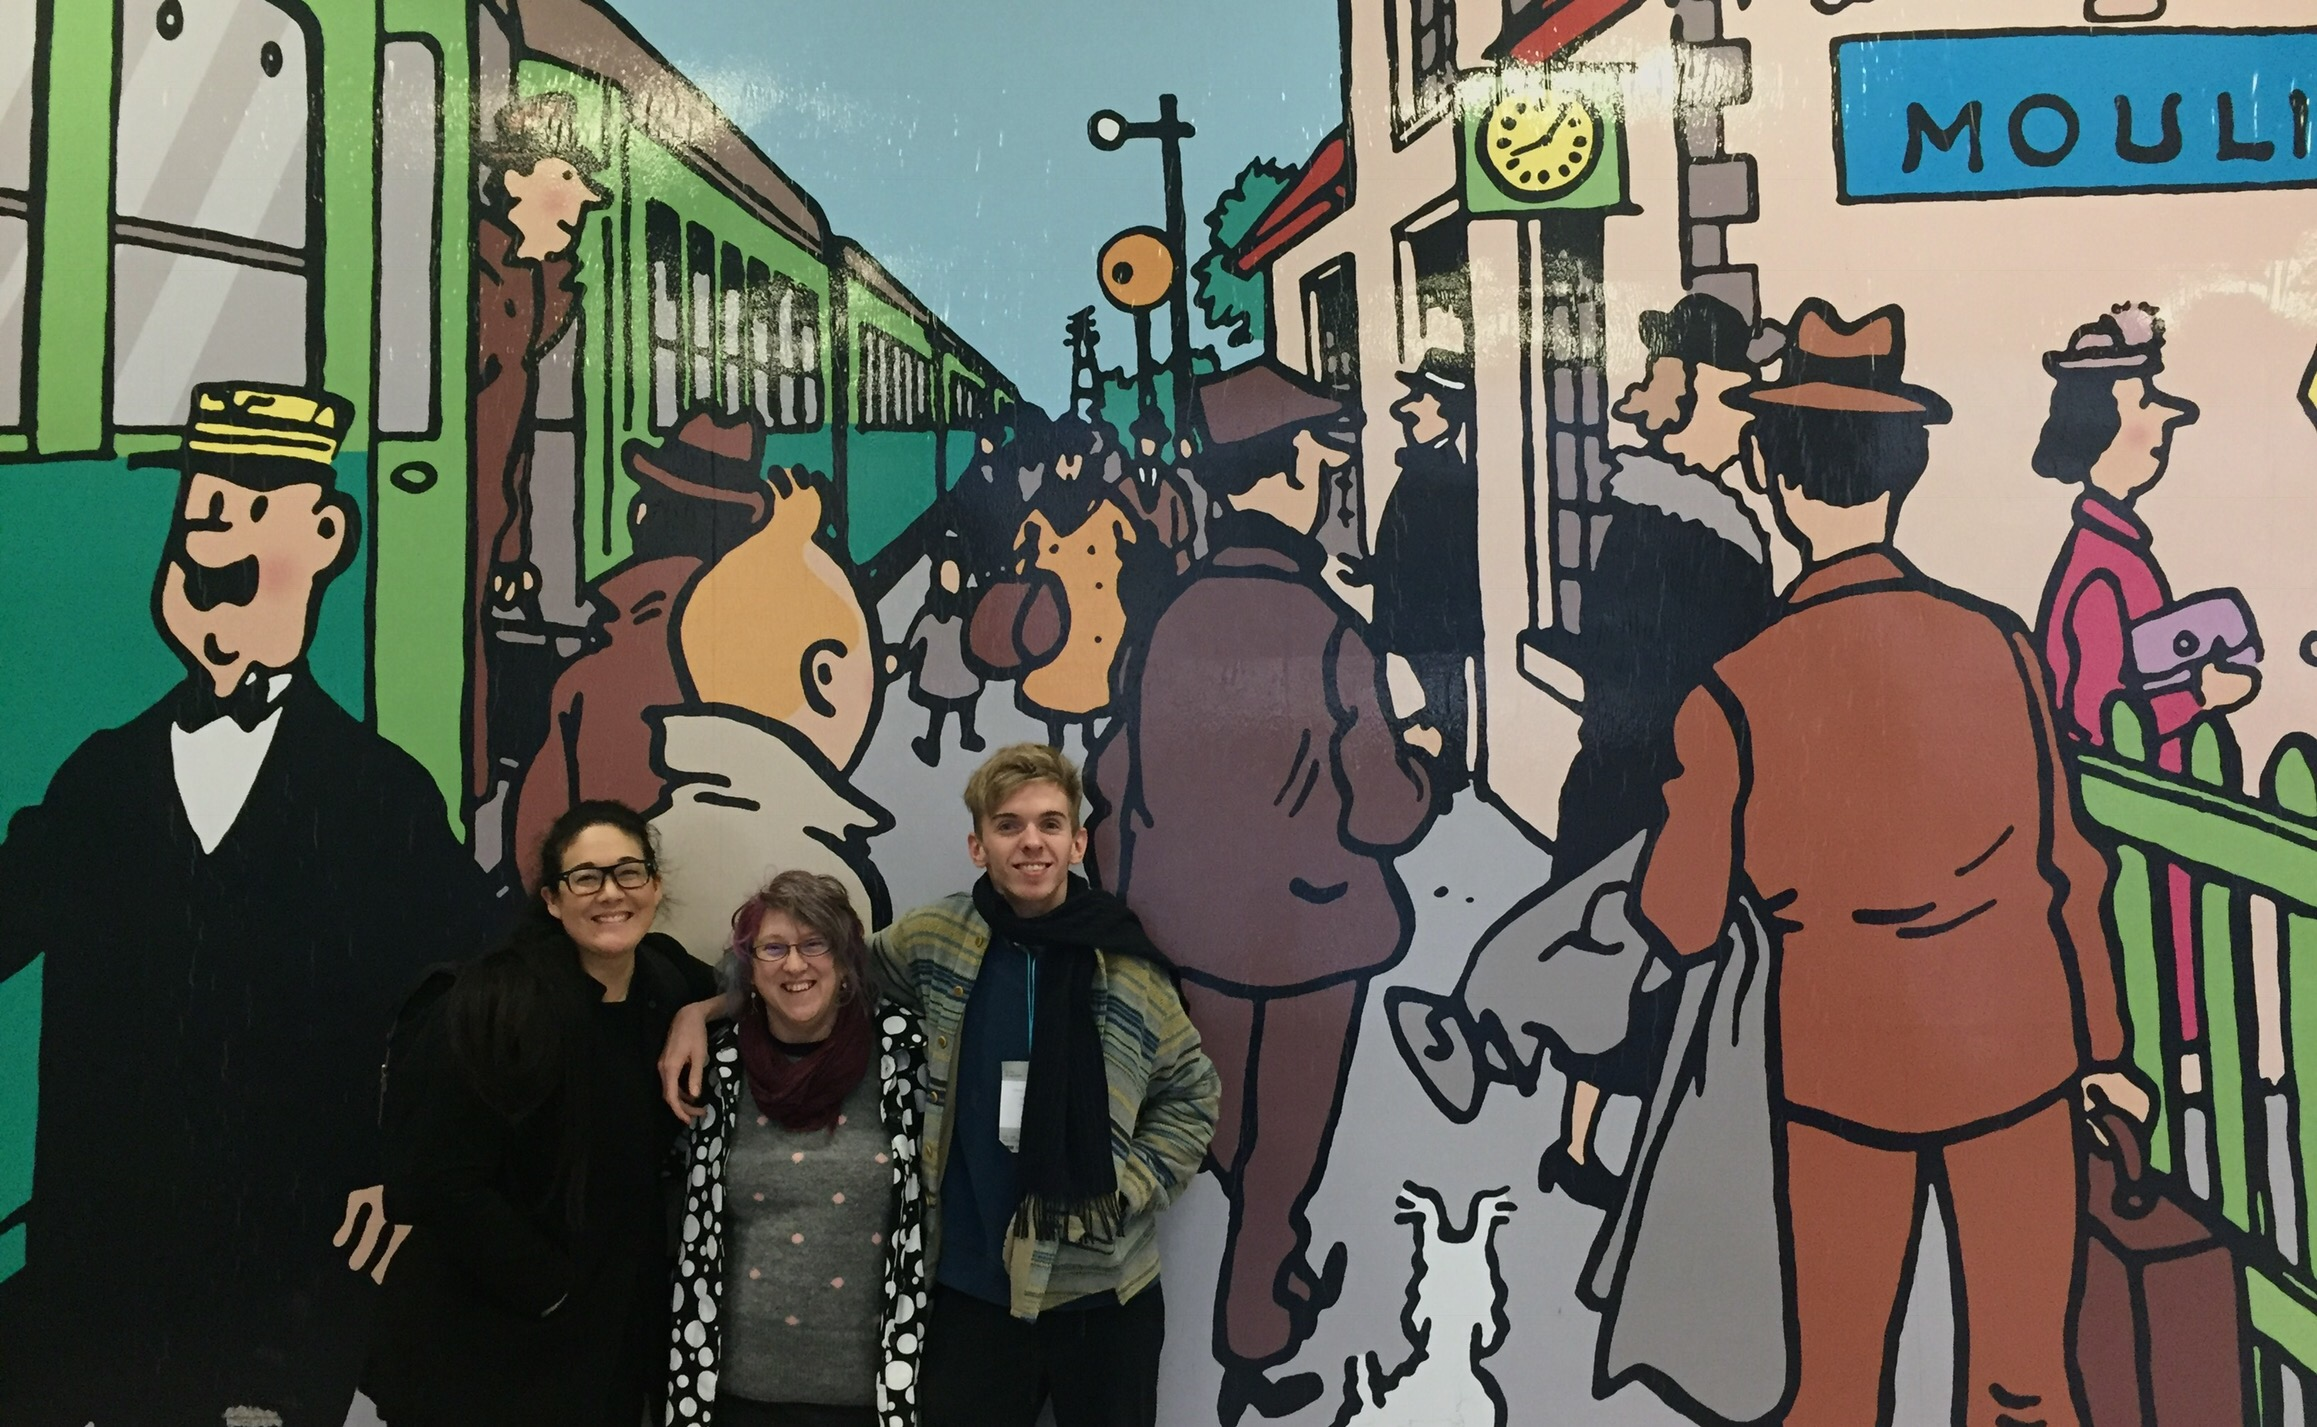 3 people, 2 women on the left and 1 man on the right stand in front of a painted wall. They are all smiling.